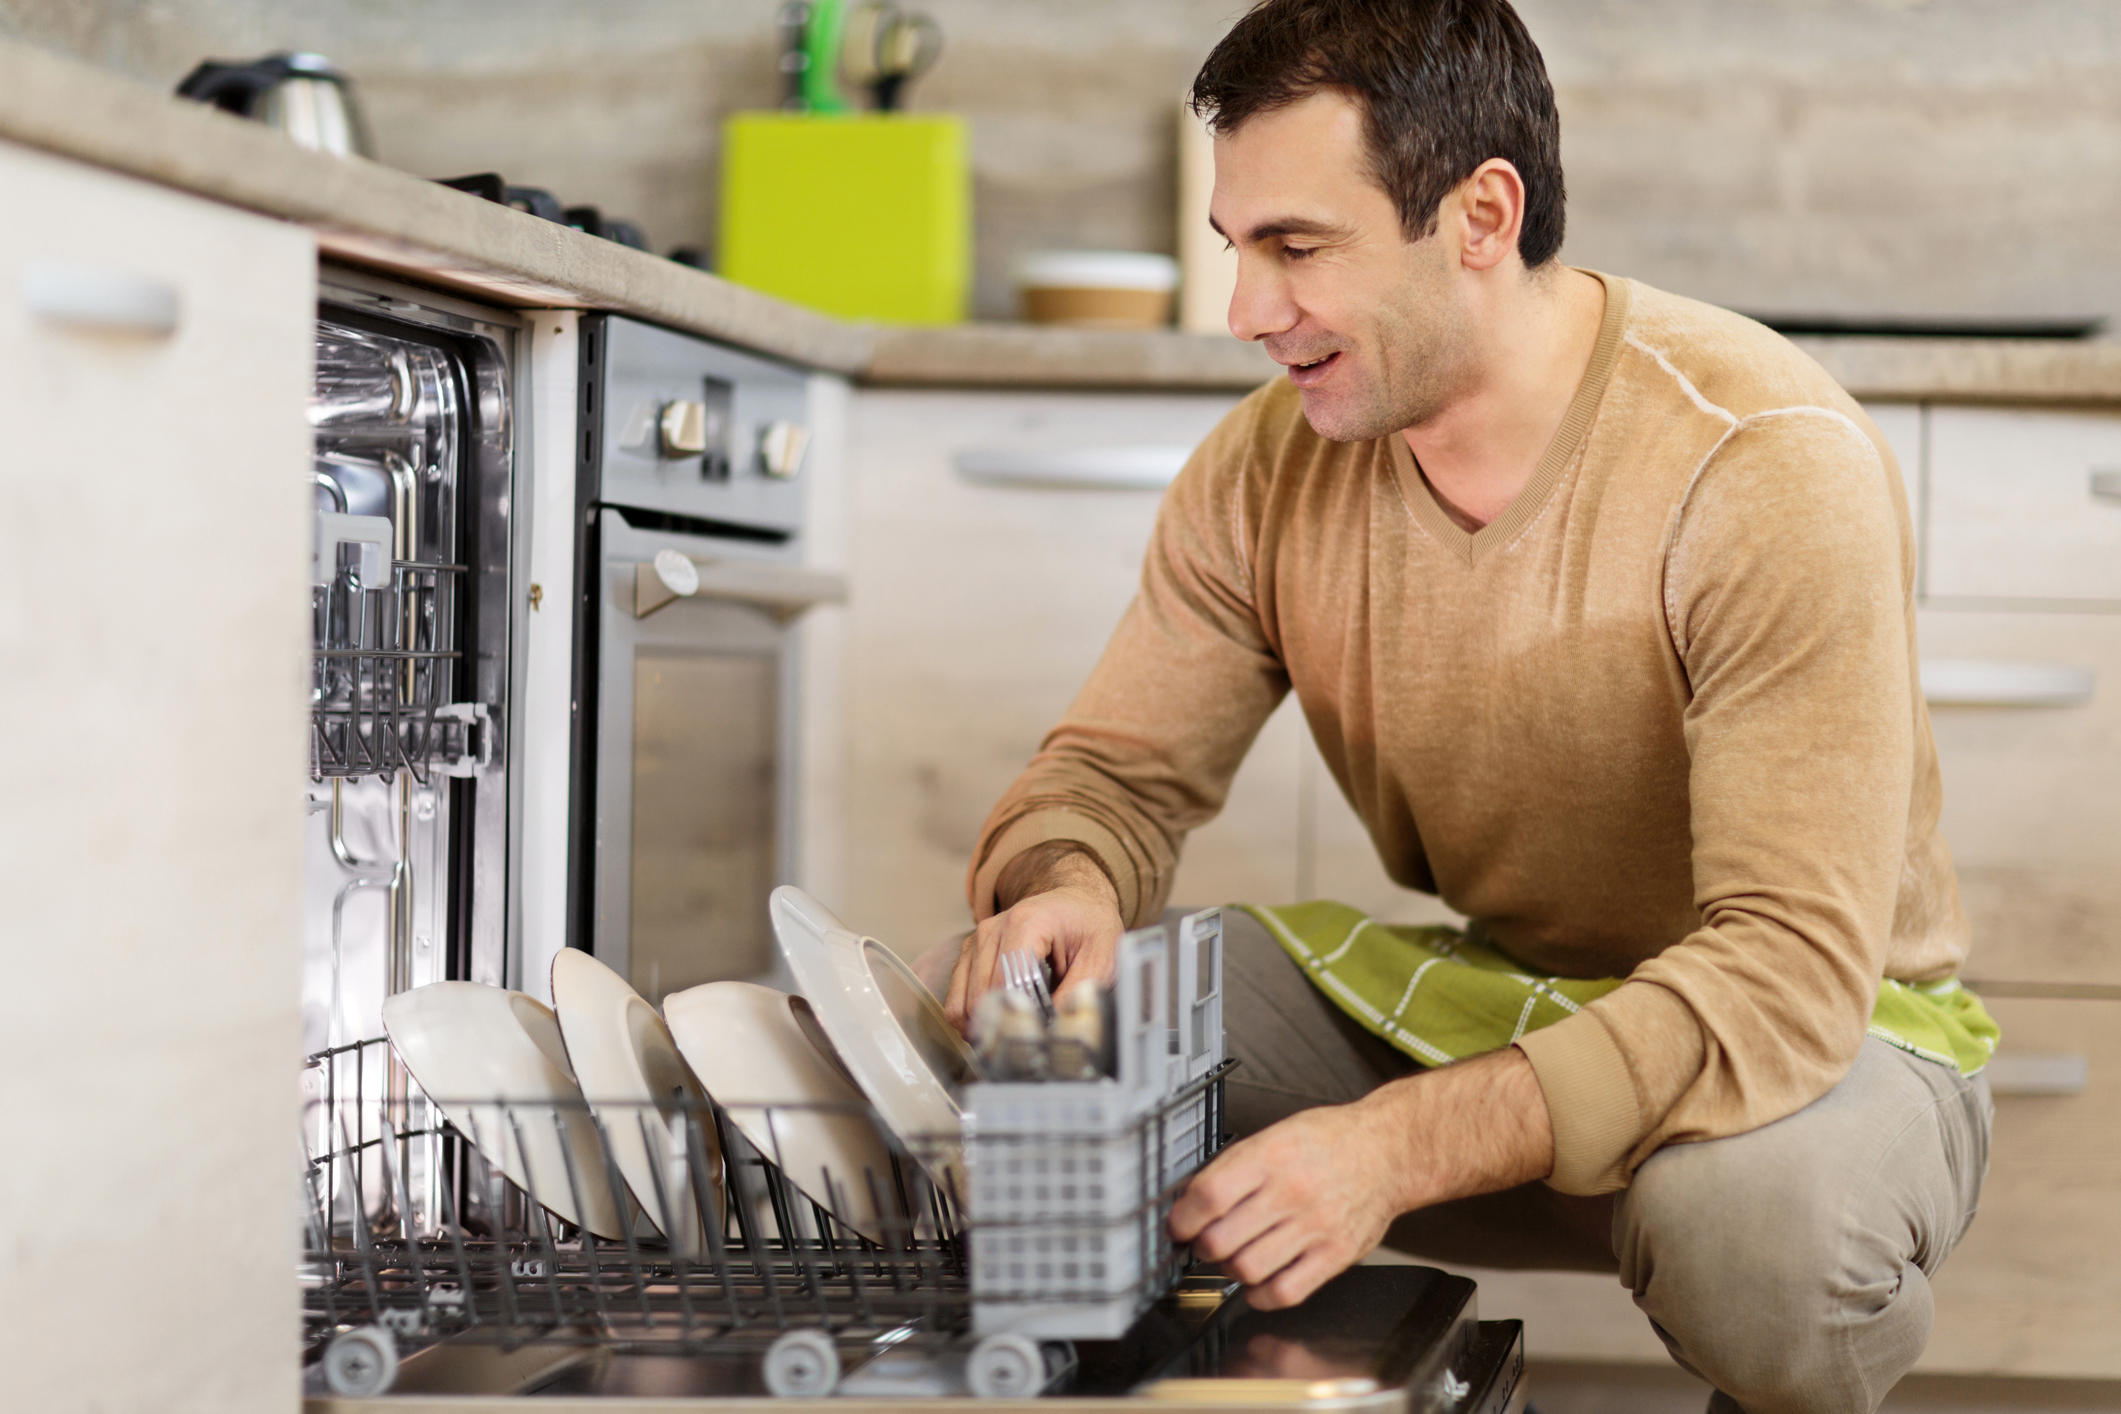 Mid adult man using dishwasher in the kitchen.